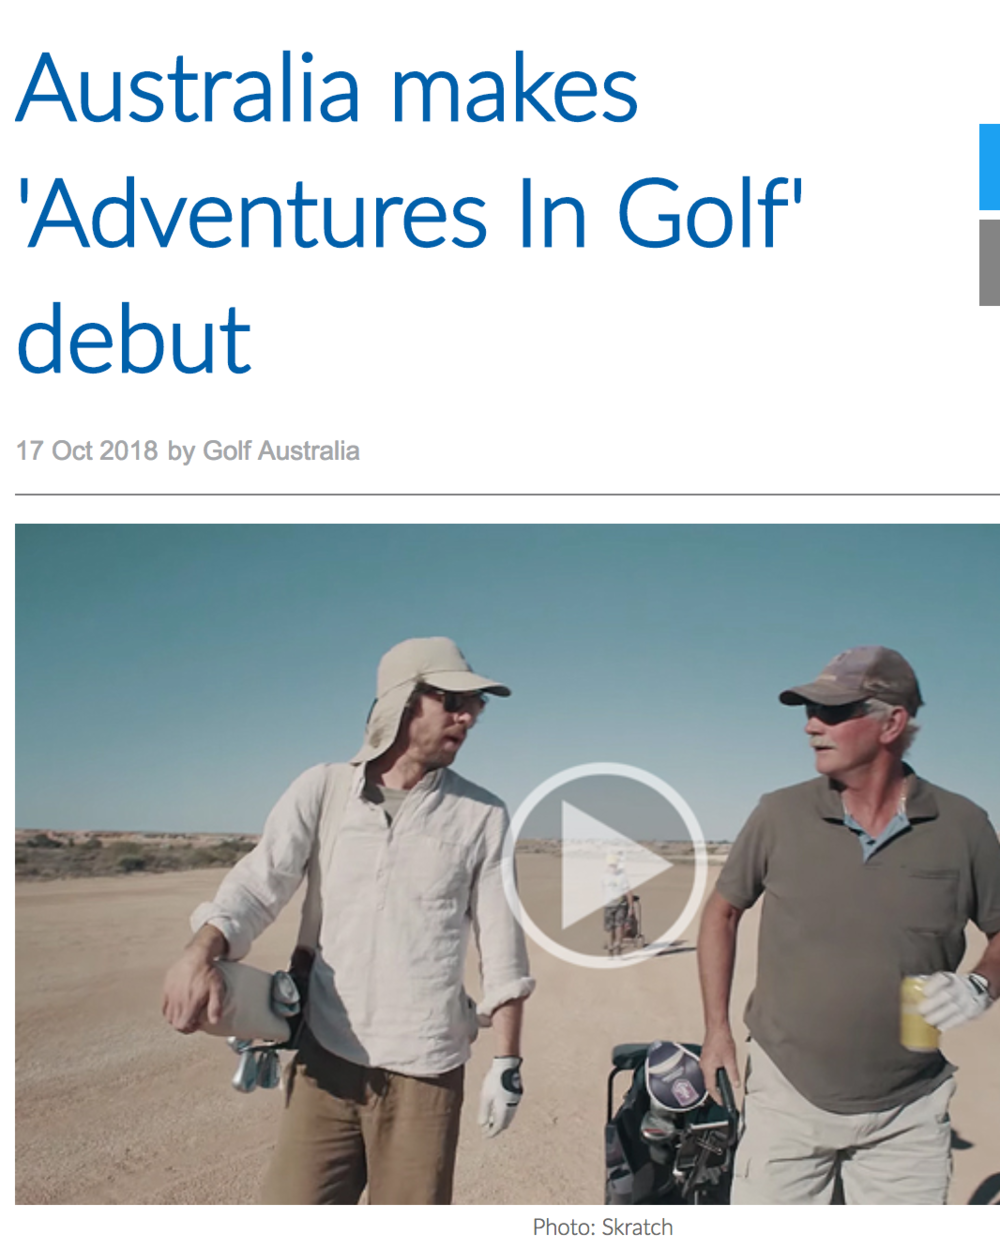 Article with Golf Australia on the Coober Pedy episode